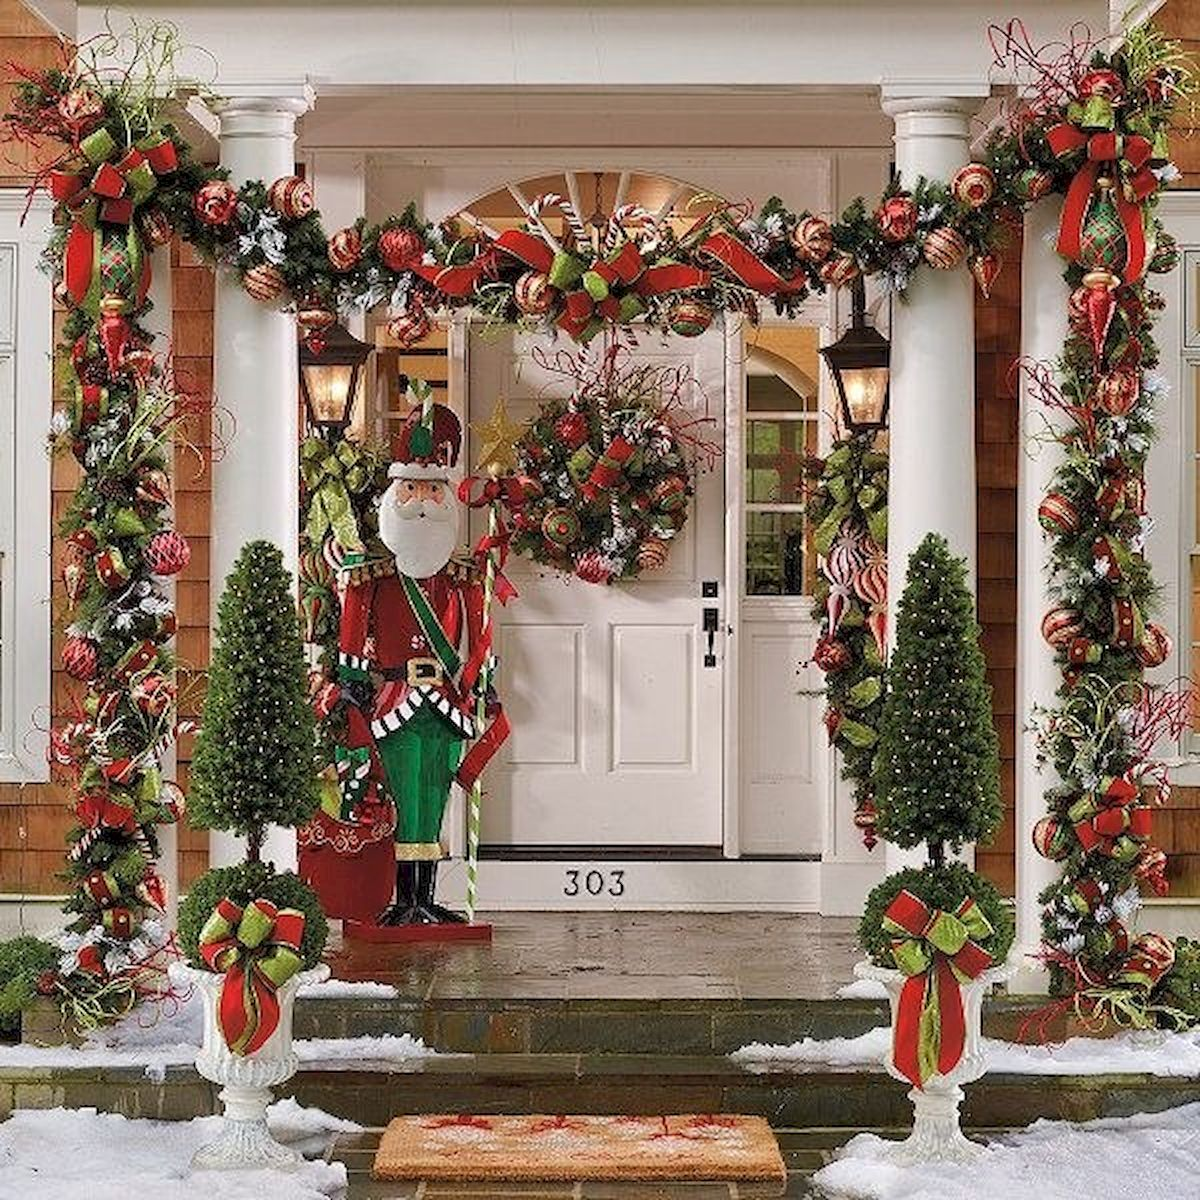 50 Awesome Christmas Front Porch Decor Ideas And Design (2)